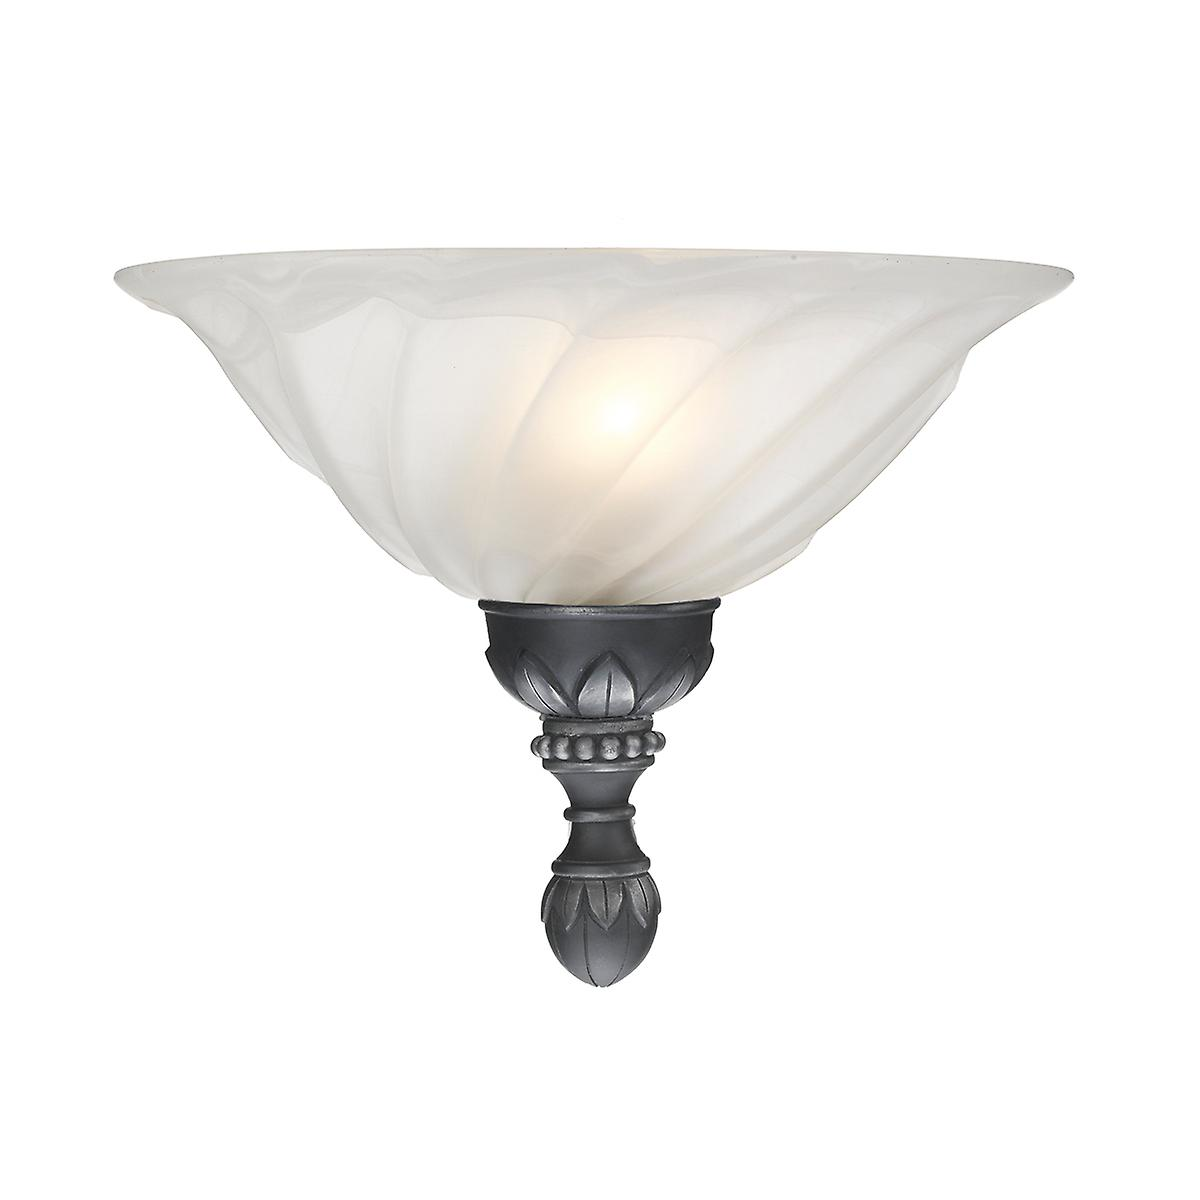 David Hunt OXW1 Oxford Wall Washer Light In A Black And Silver Finish With Glass